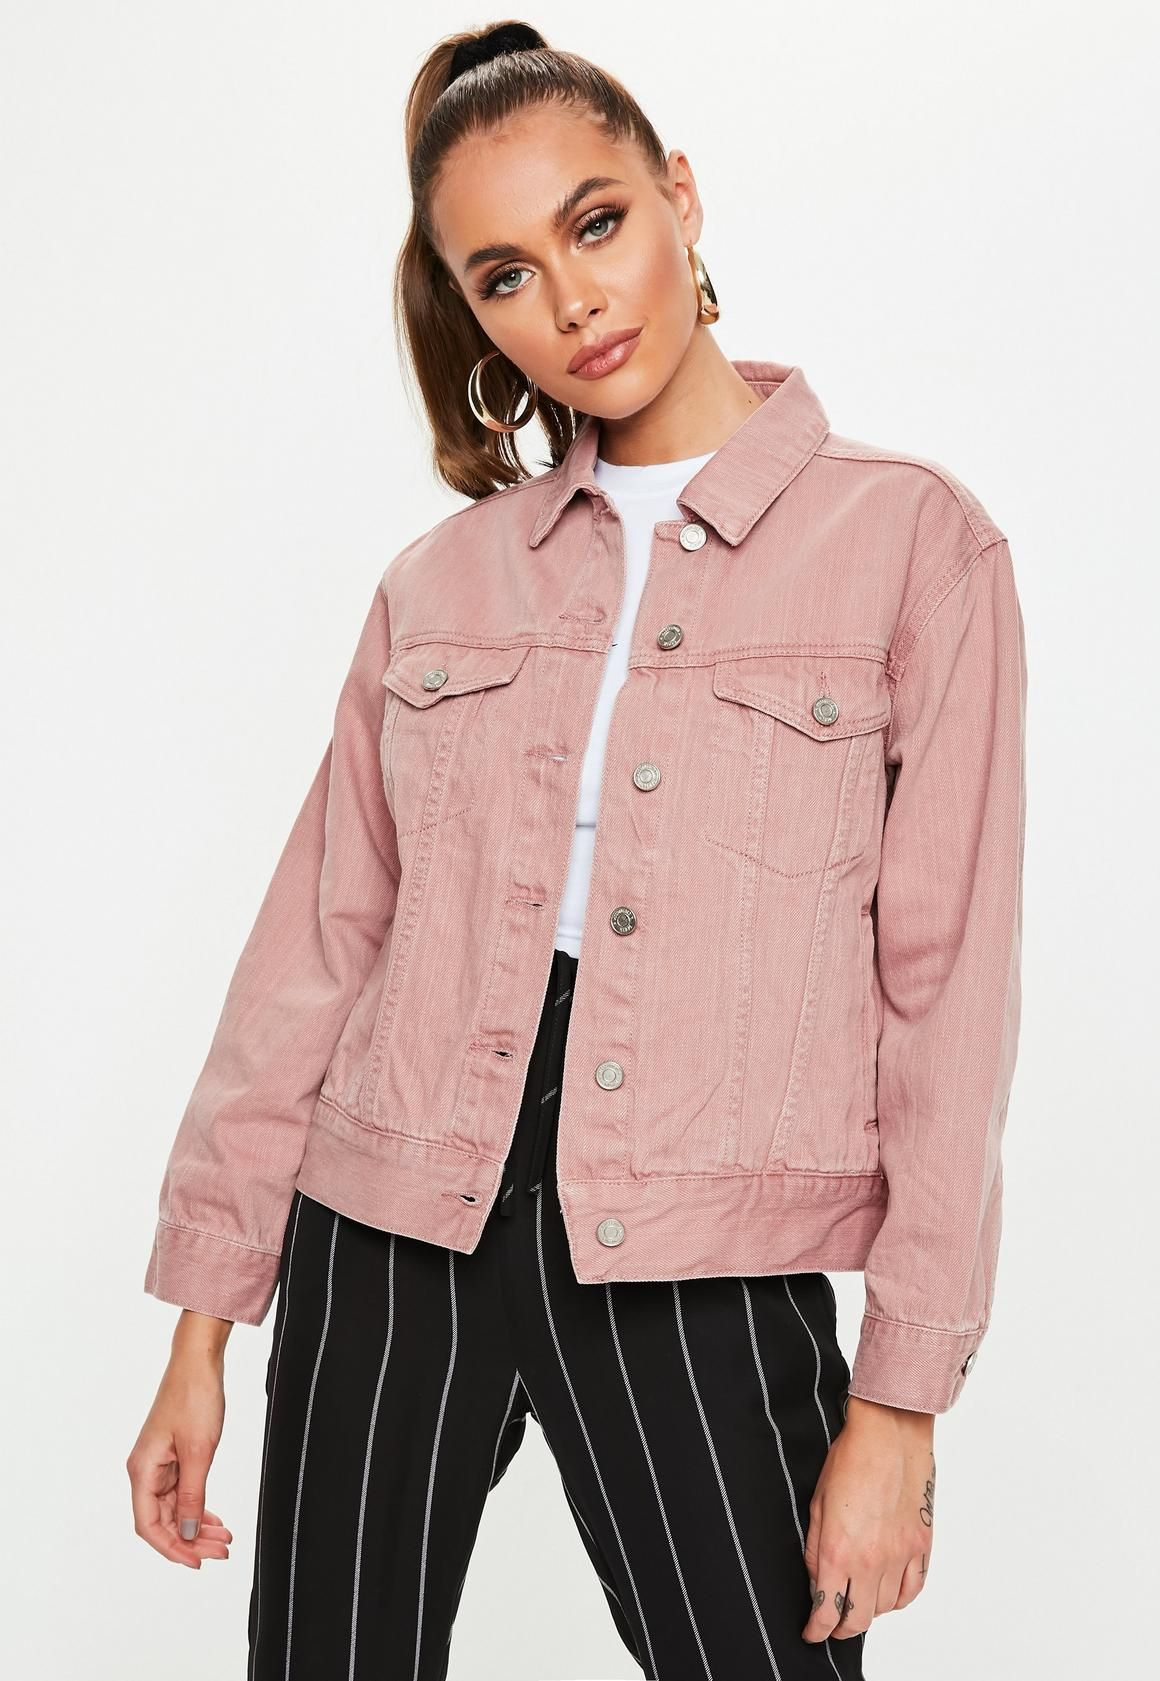 afb84527408 Petite Dark Pink Oversized Denim Jacket in 2019 | TEEZY AESTHETICS ...